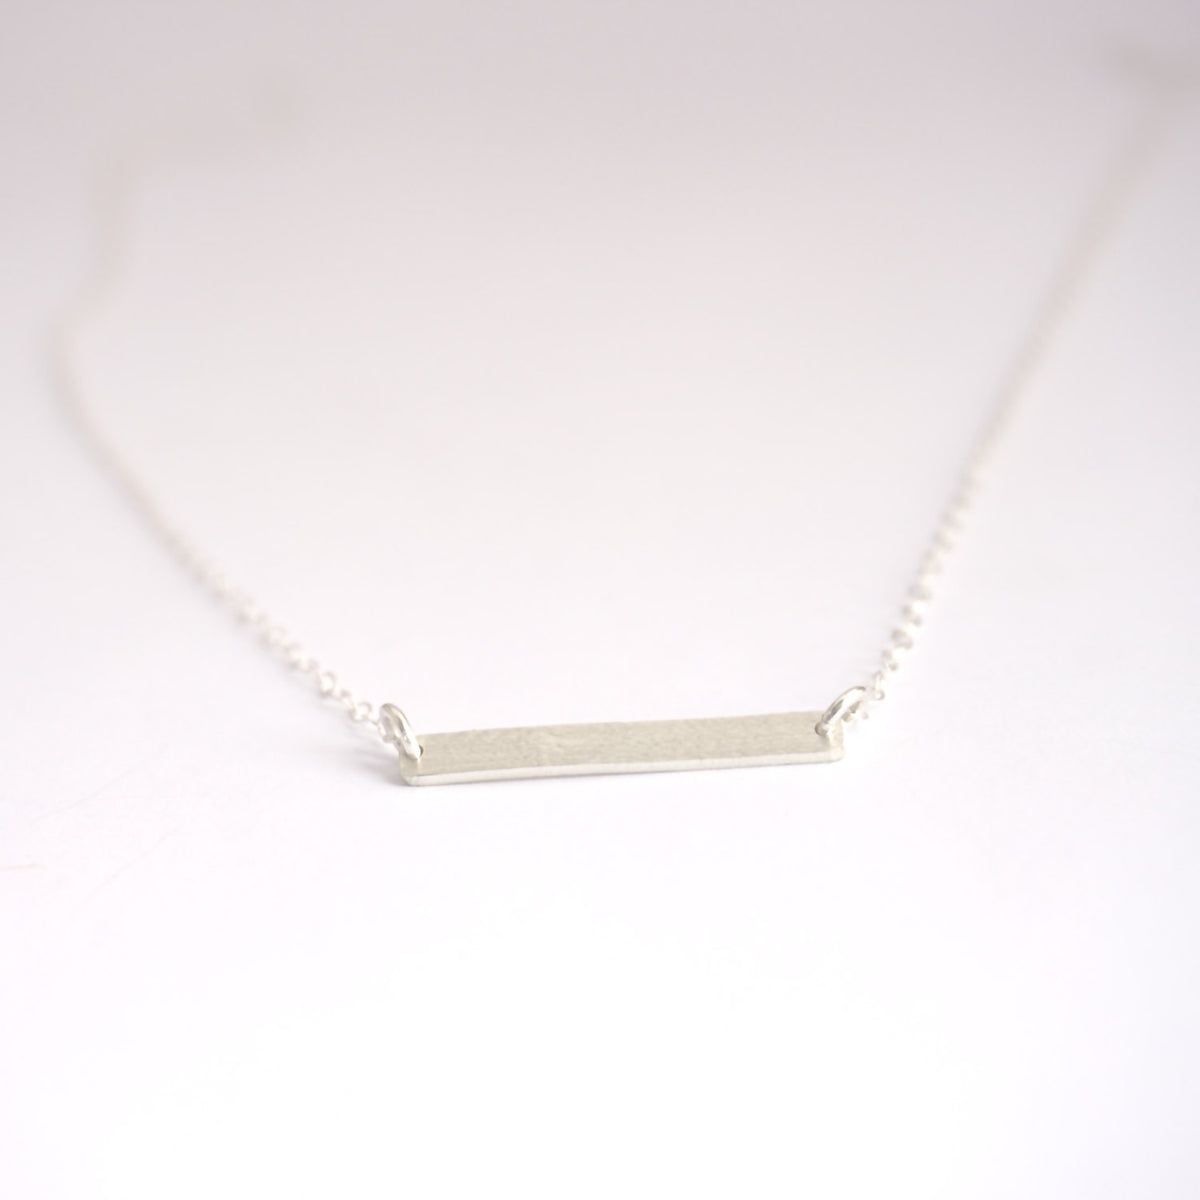 Hand-Made Modern Styled Sterling Silver or Brass Flat Bar W/ Sterling Silver Chain Necklace - 0137 - Virginia Wynne Designs